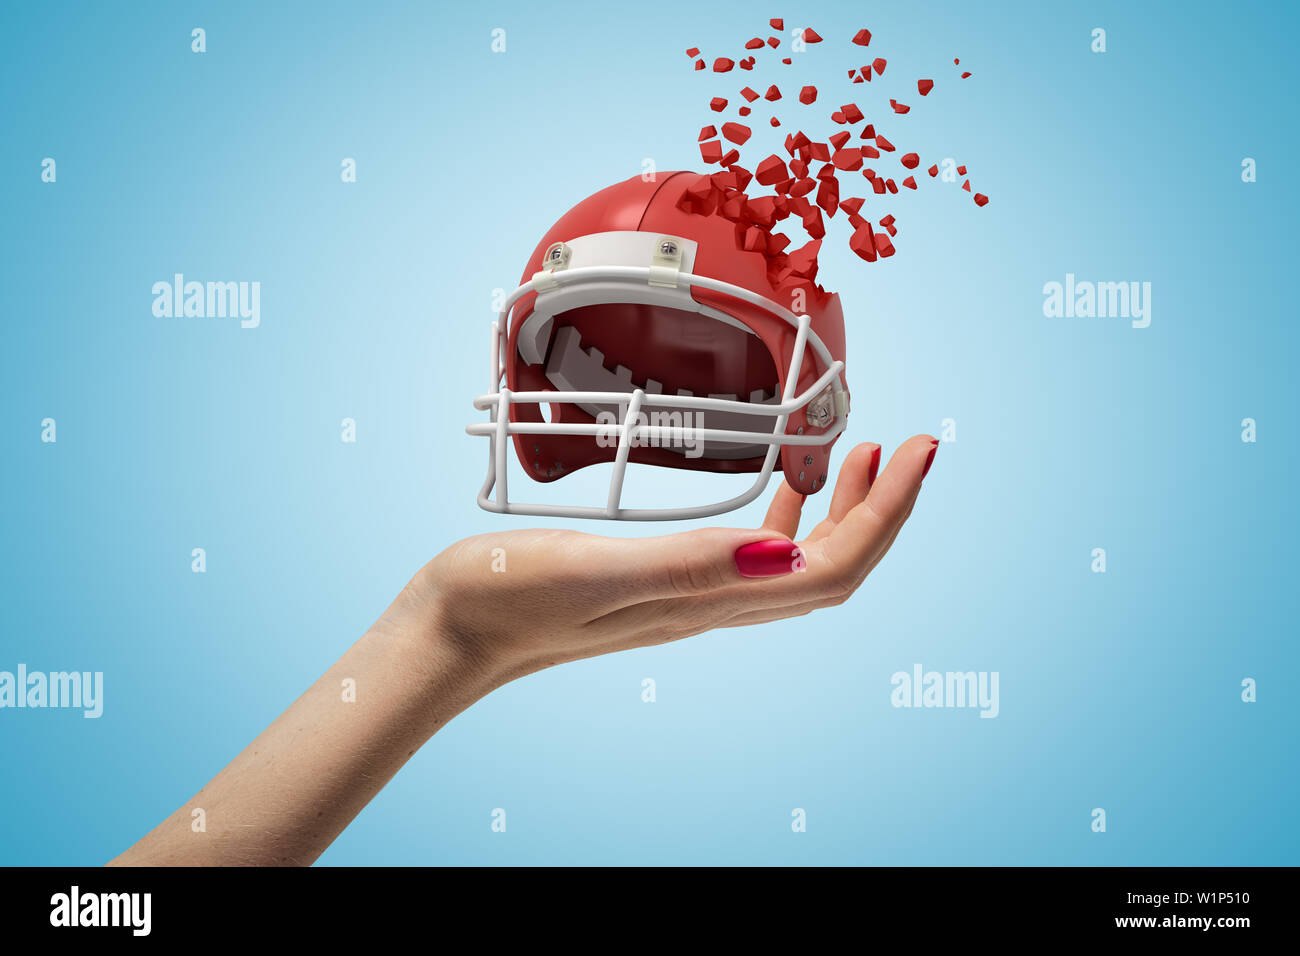 Closeup of woman's hand holding sports helmet which is breaking into small pieces that are flying away on light blue background. - Stock Image